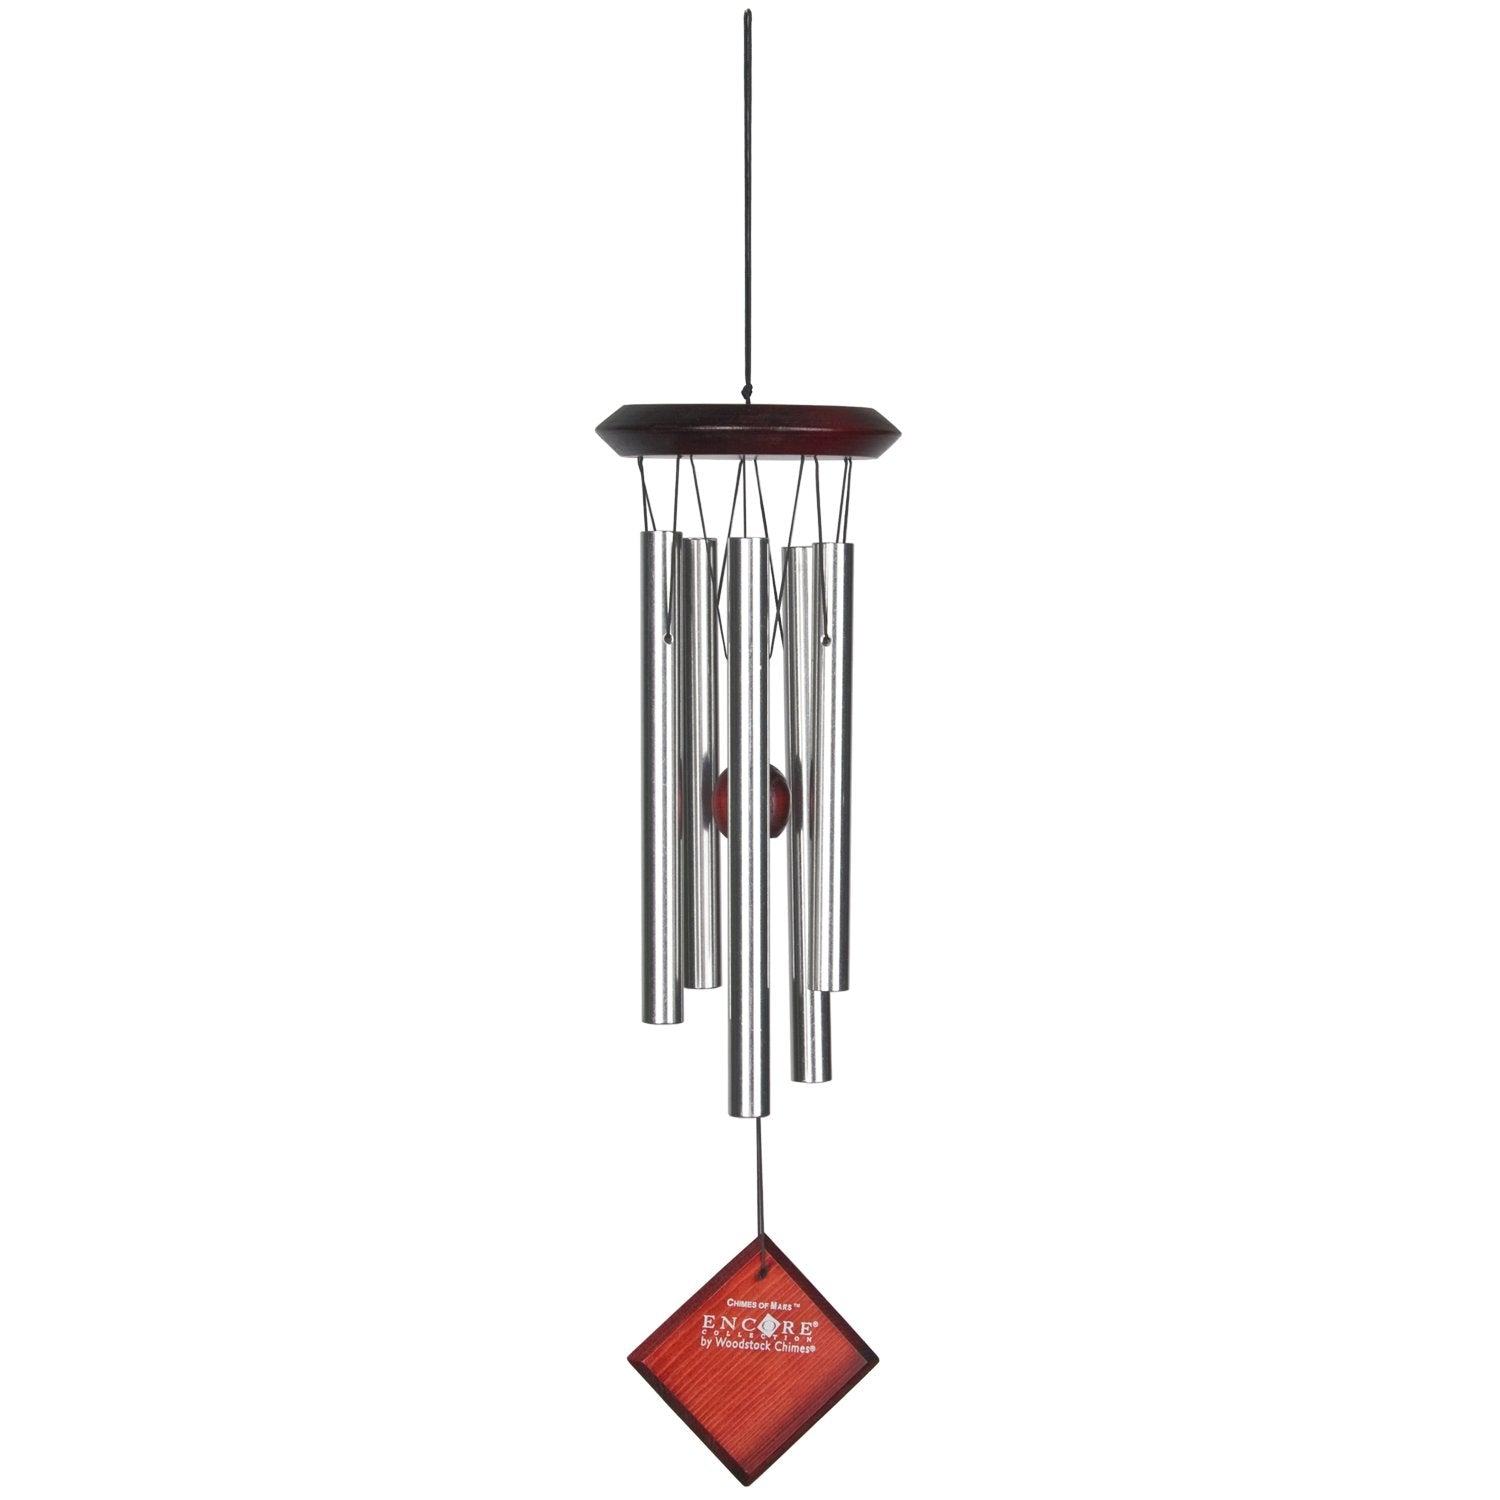 Encore Chimes of Mars - Silver full product image